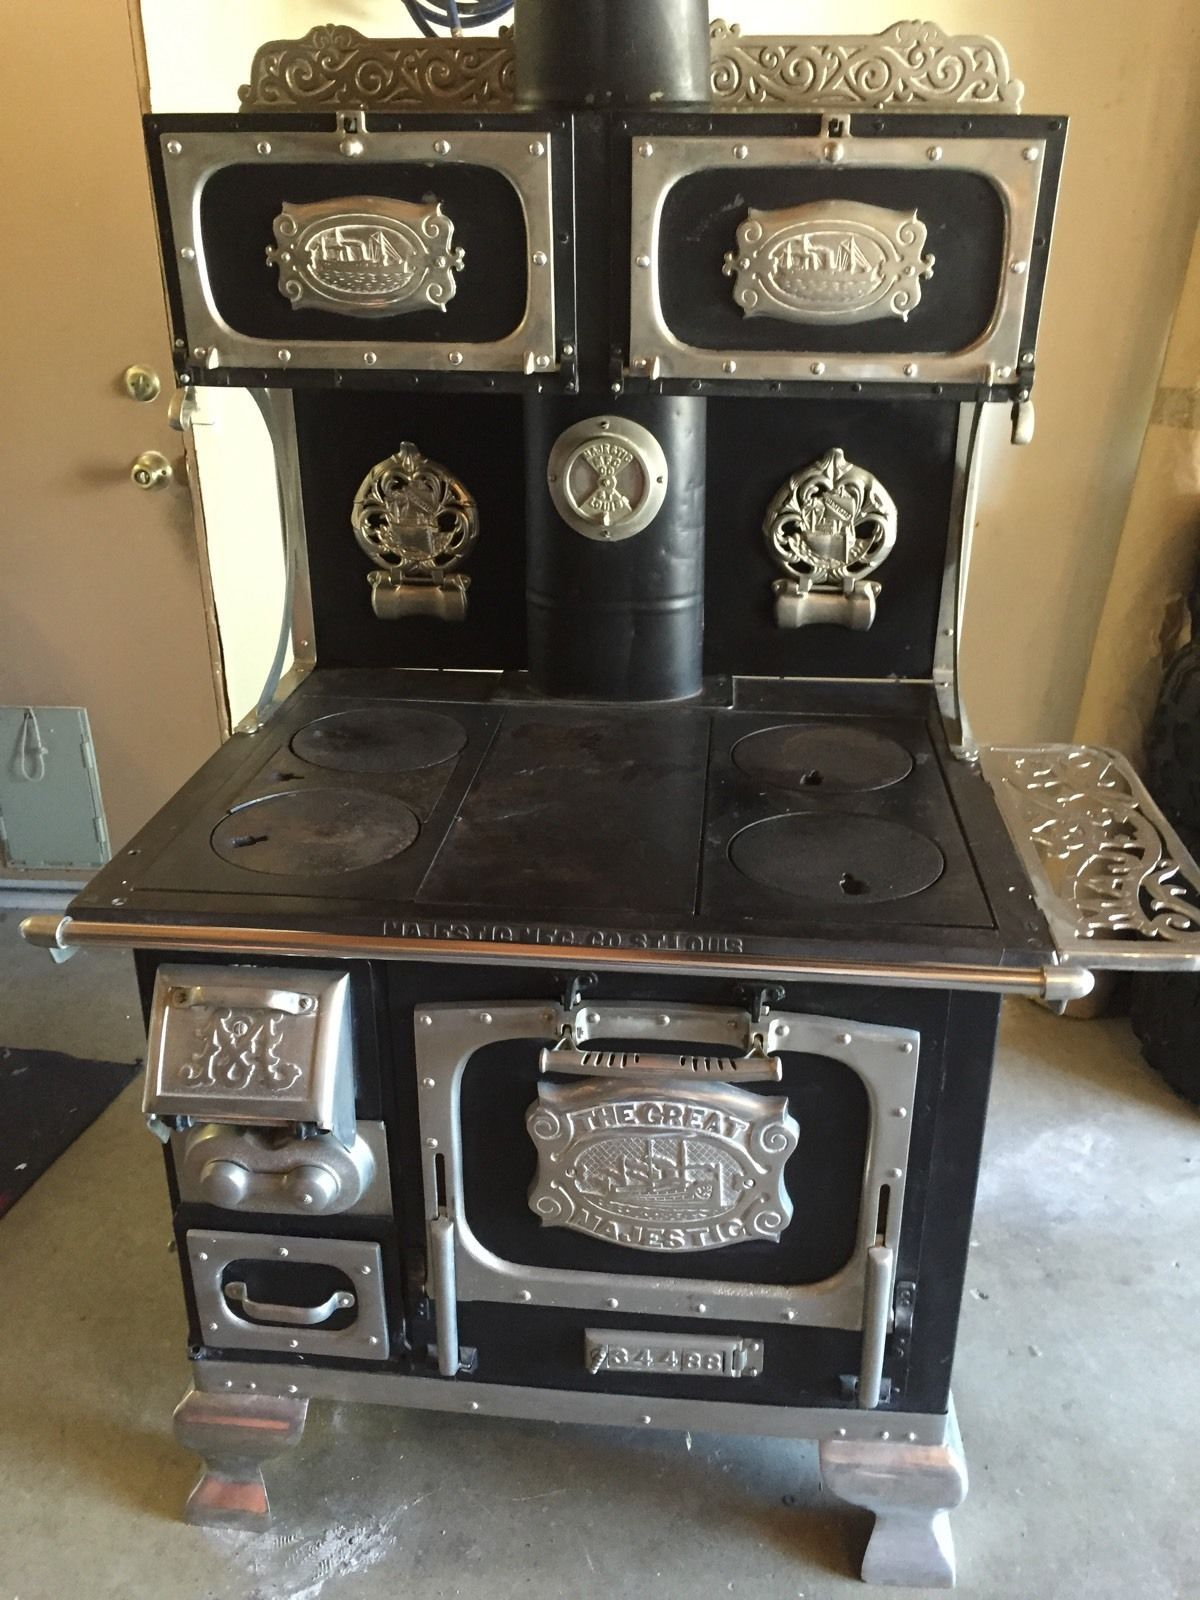 Great Majestic Wood Burning Stove Antique Cook Top Oven Restored Excellent Wood Burning Stove Antique Stove Cooktop